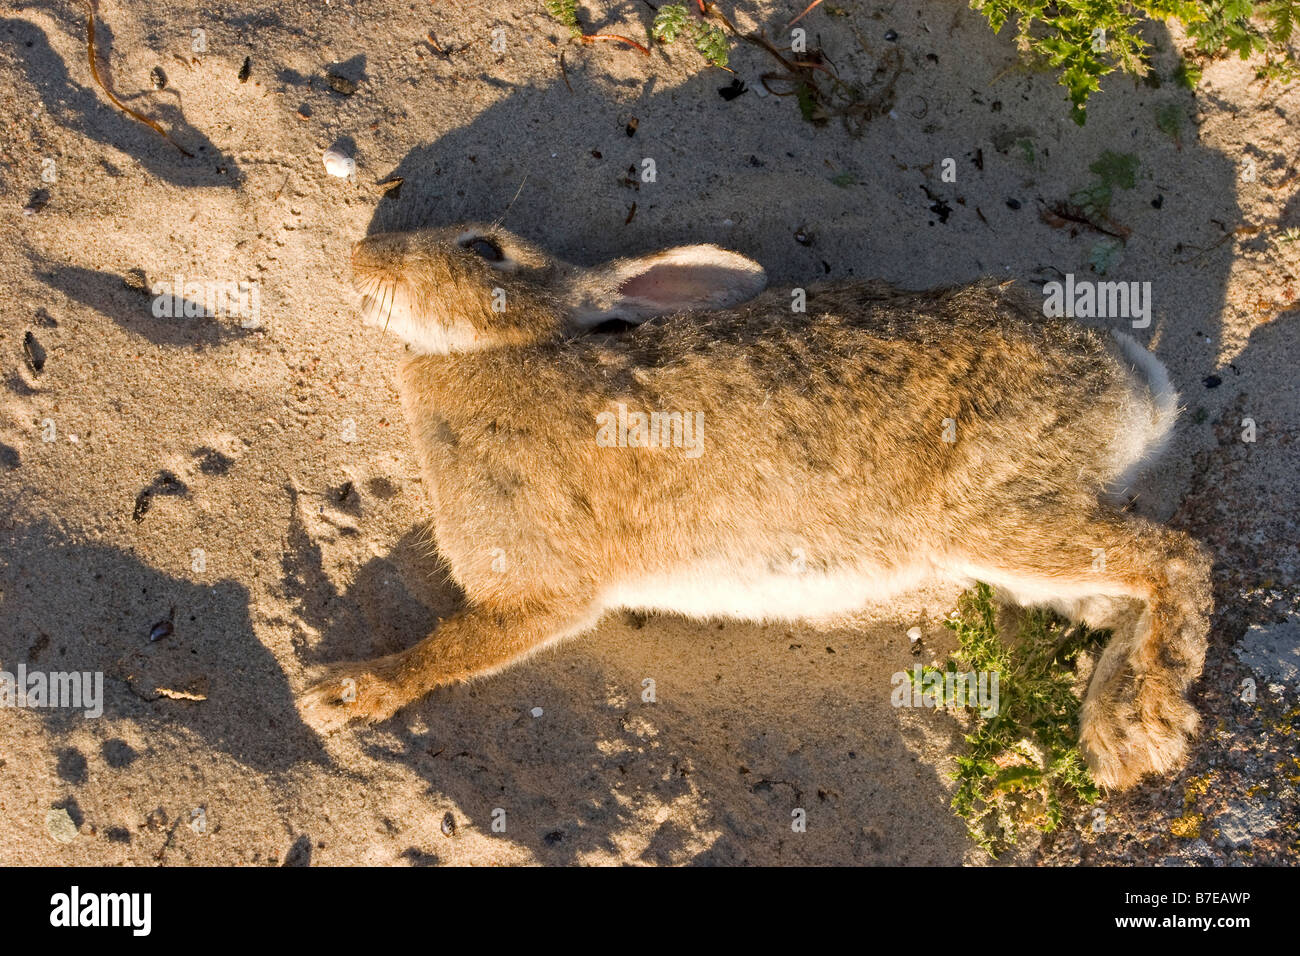 Dead rabbit - Stock Image